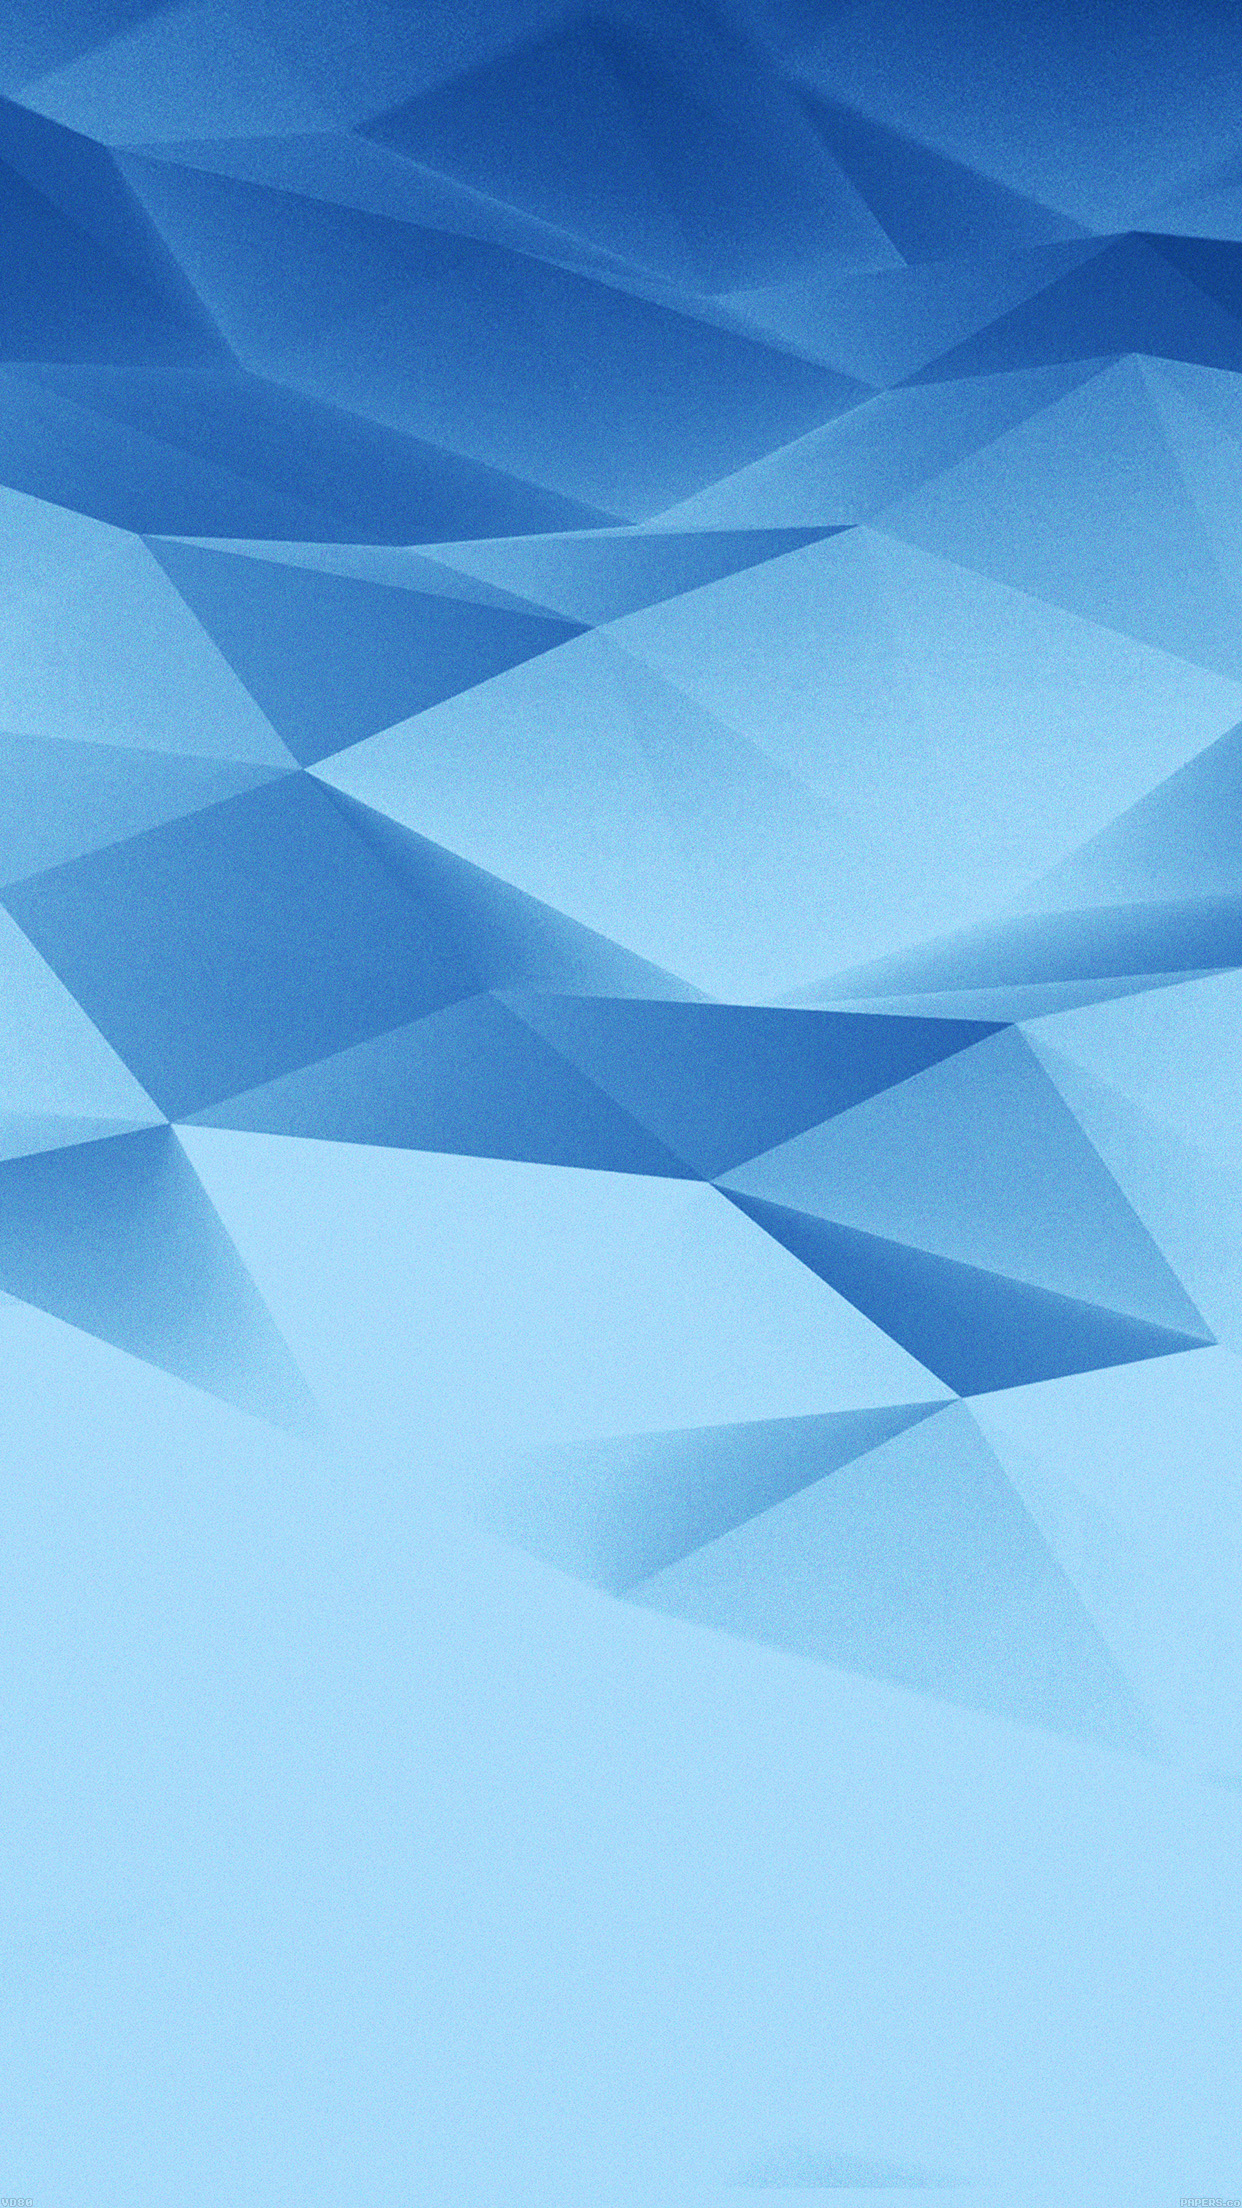 Wave Wallpaper Iphone 7 Papers Co Iphone Wallpaper Vd80 Noir Light Blue By